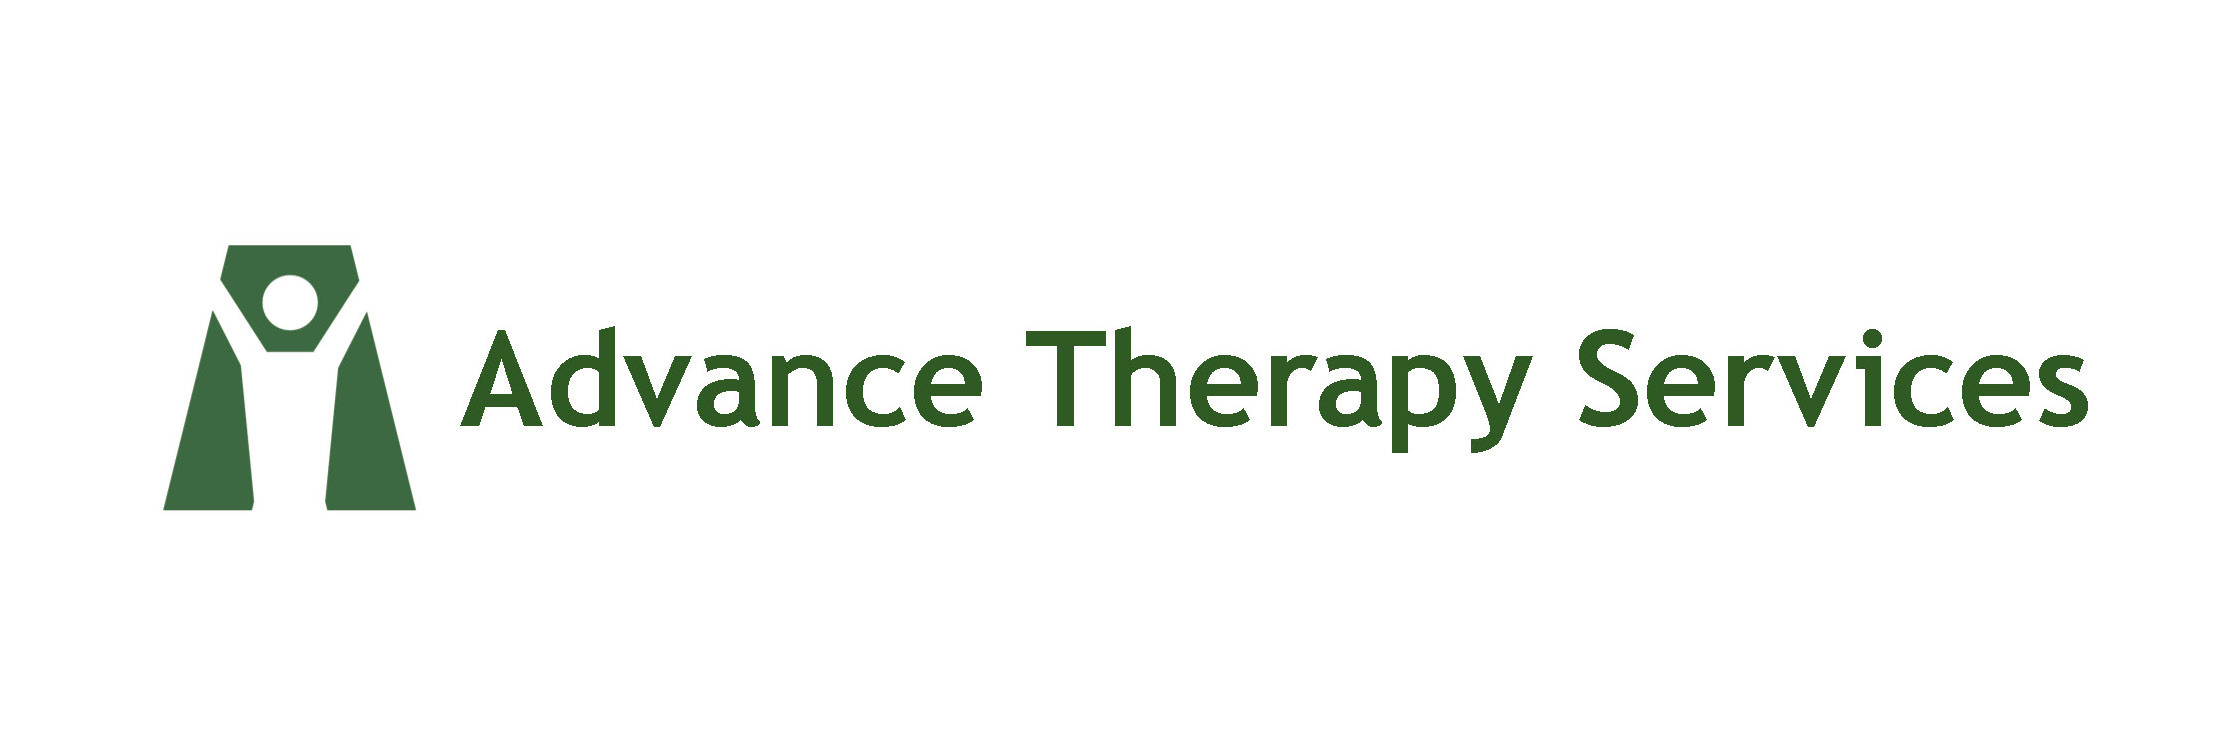 Advance Therapy Services